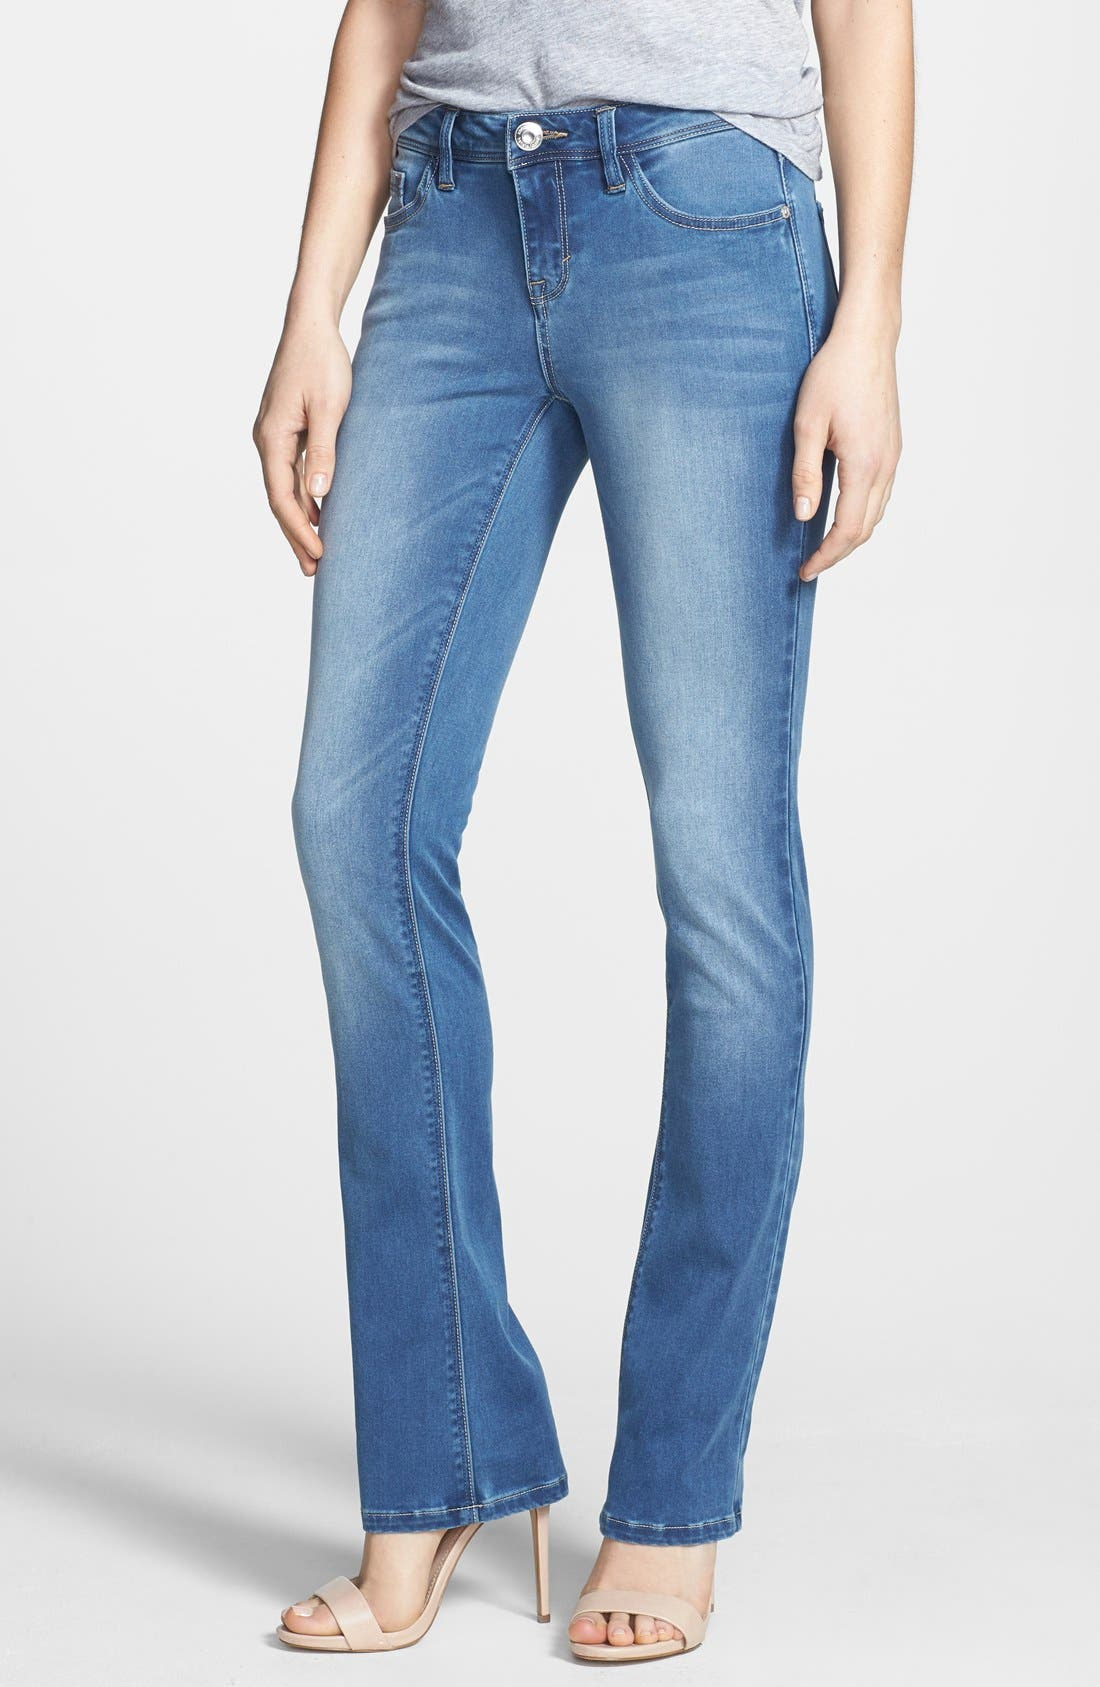 Alternate Image 1 Selected - kensie Skinny Bootcut Jeans (Layla)